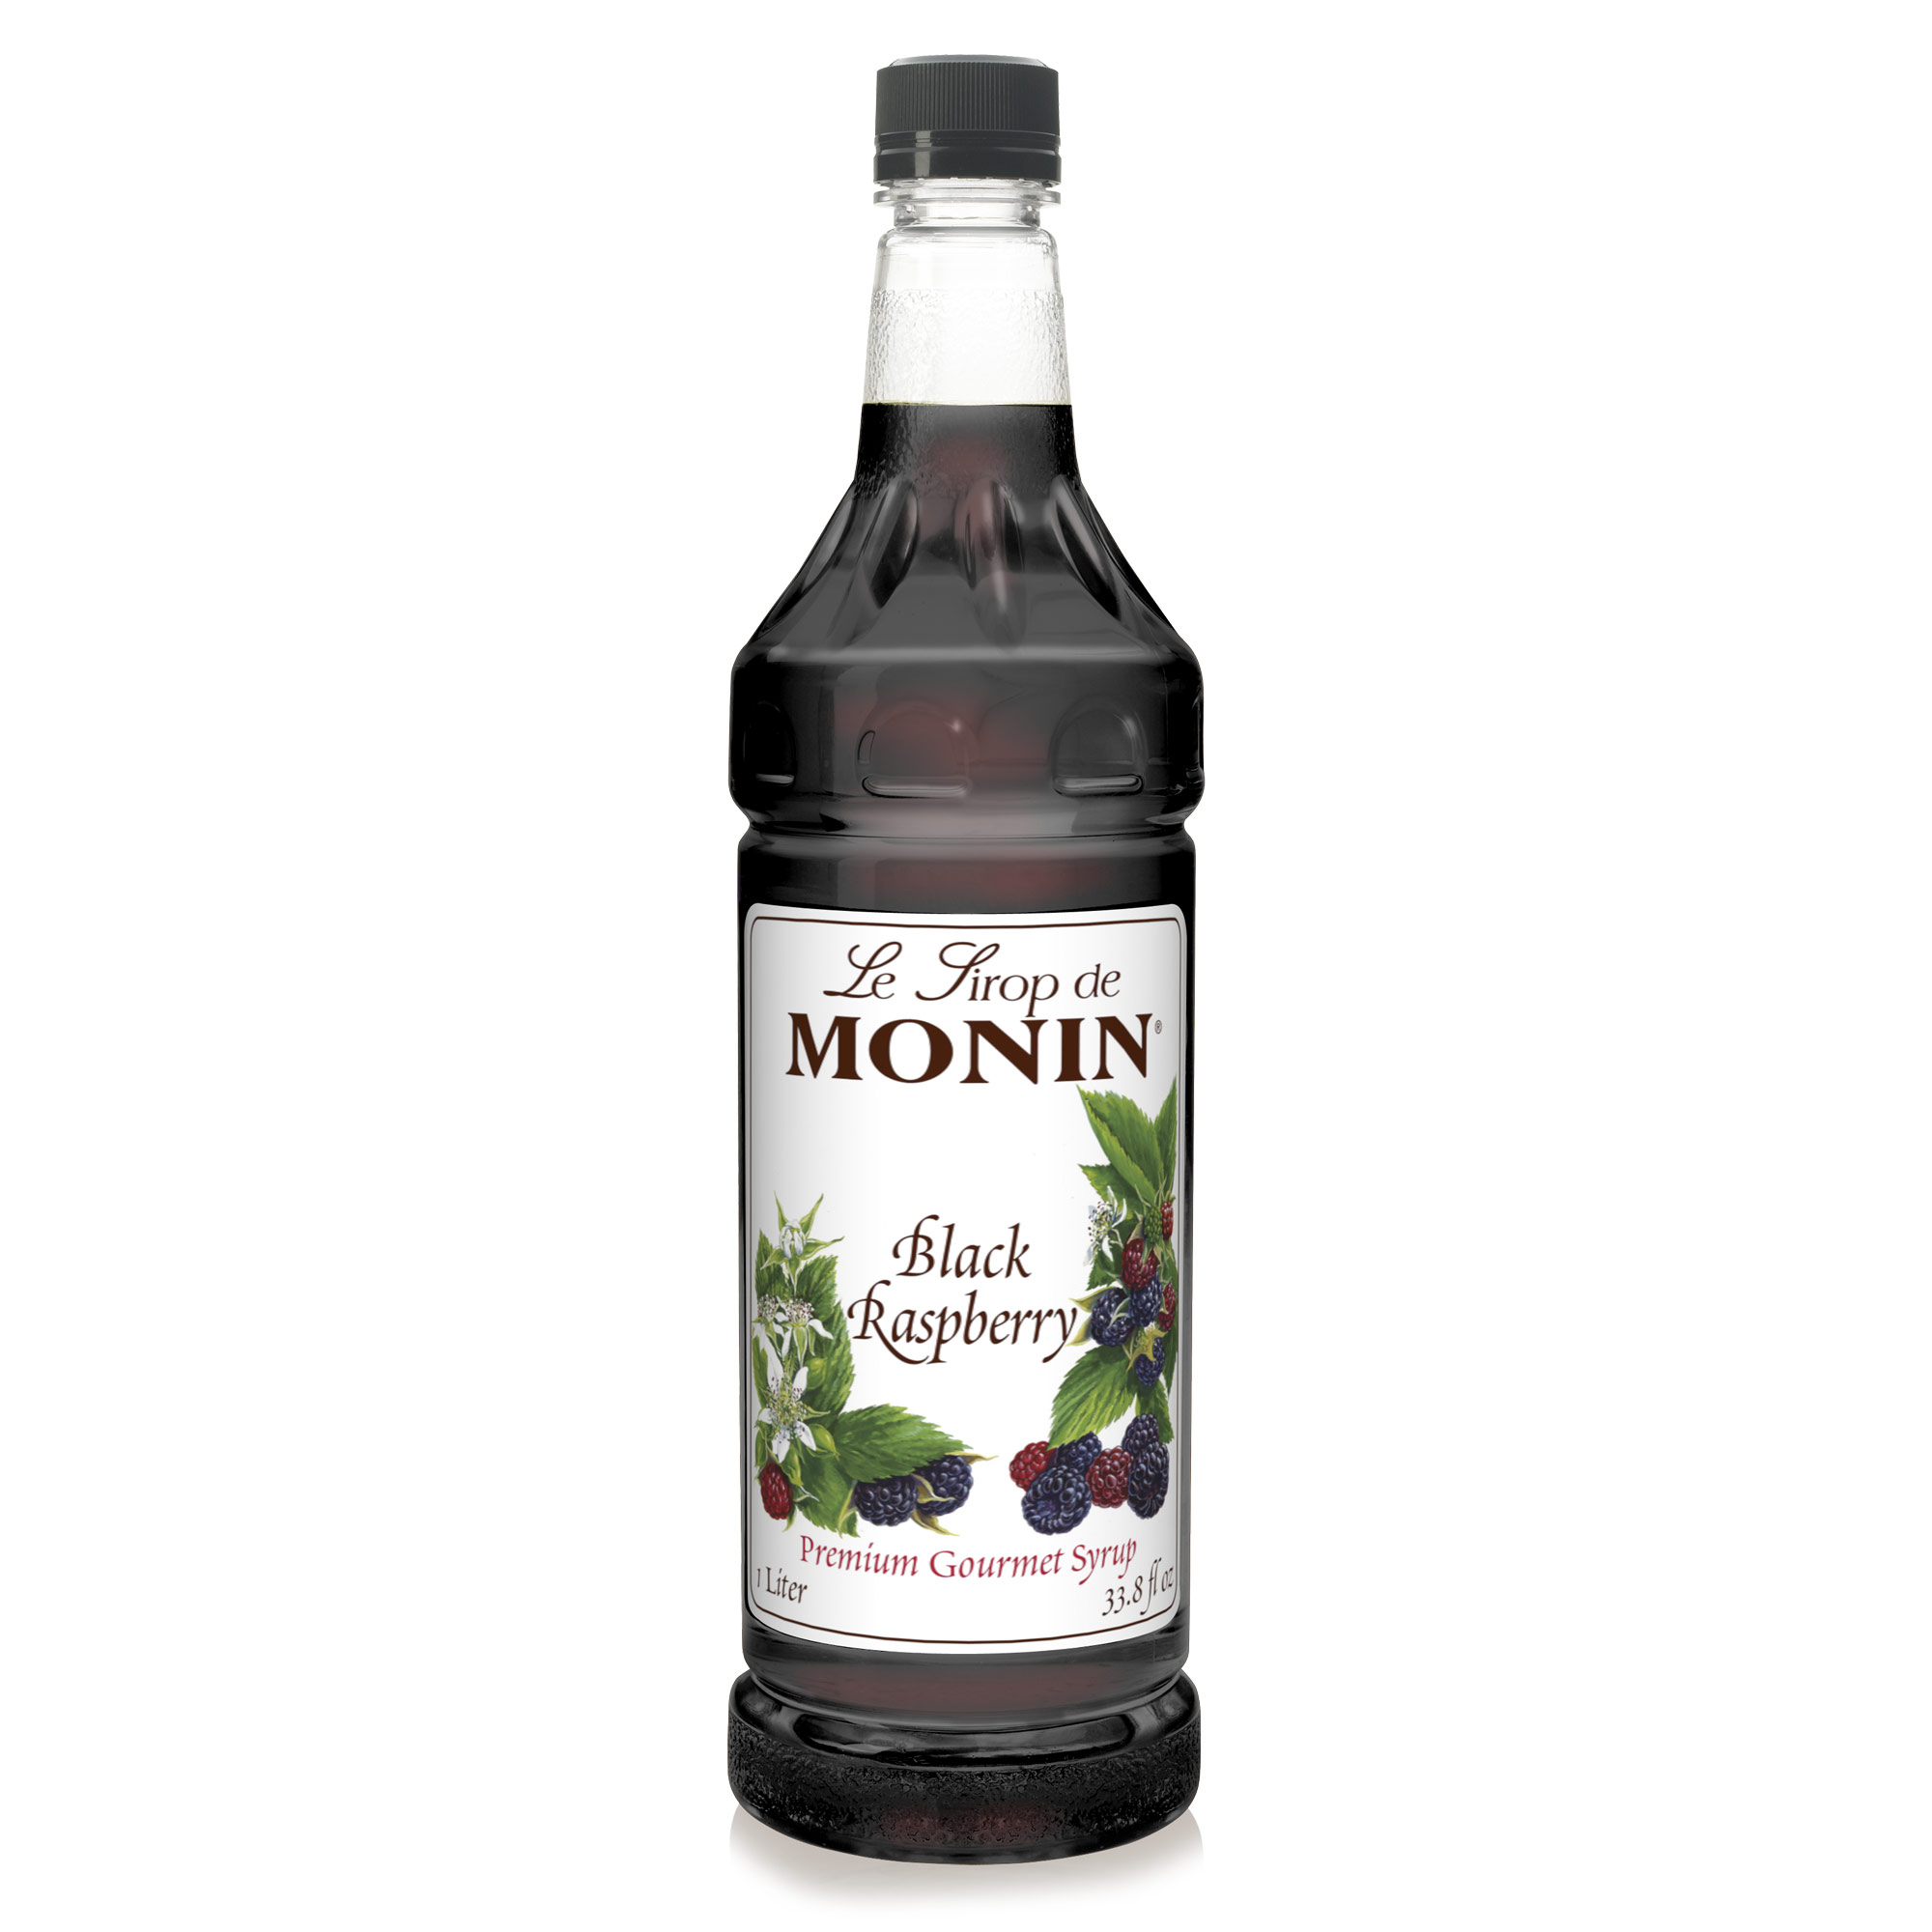 Monin Black Raspberry Syrup 1L